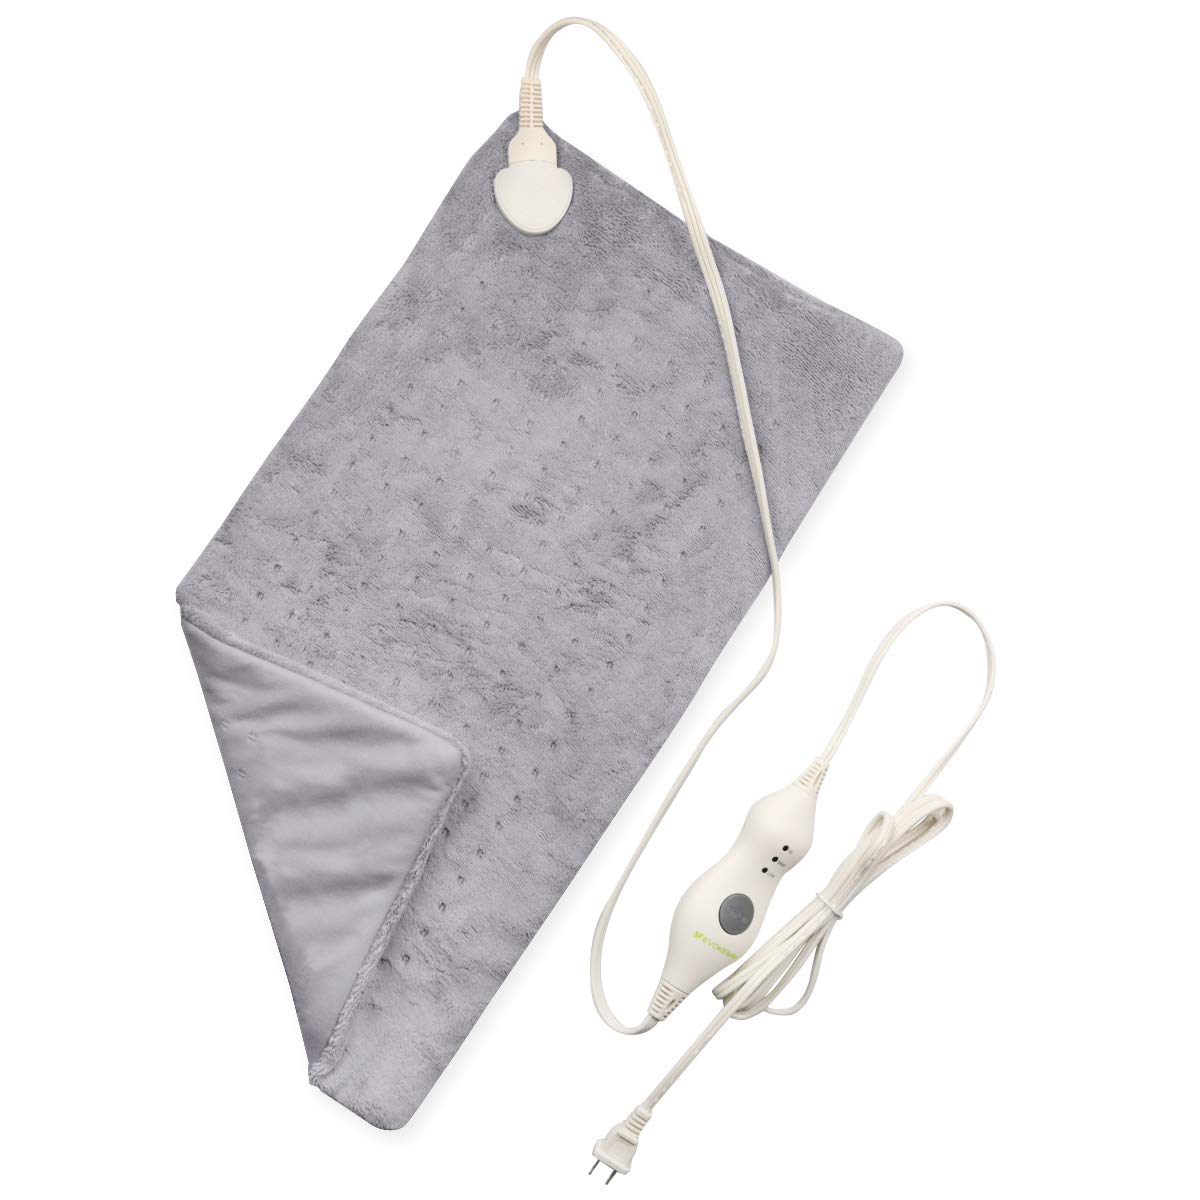 """Heating Pad - 3 Heat Settings with Auto-Shut Off, XL Ultra Soft Dry/Moist Heating Pad for Back, Abdomen, Hand, Shoulder Legs, Waist Pain Relief at Home - 12"""" x 24"""""""